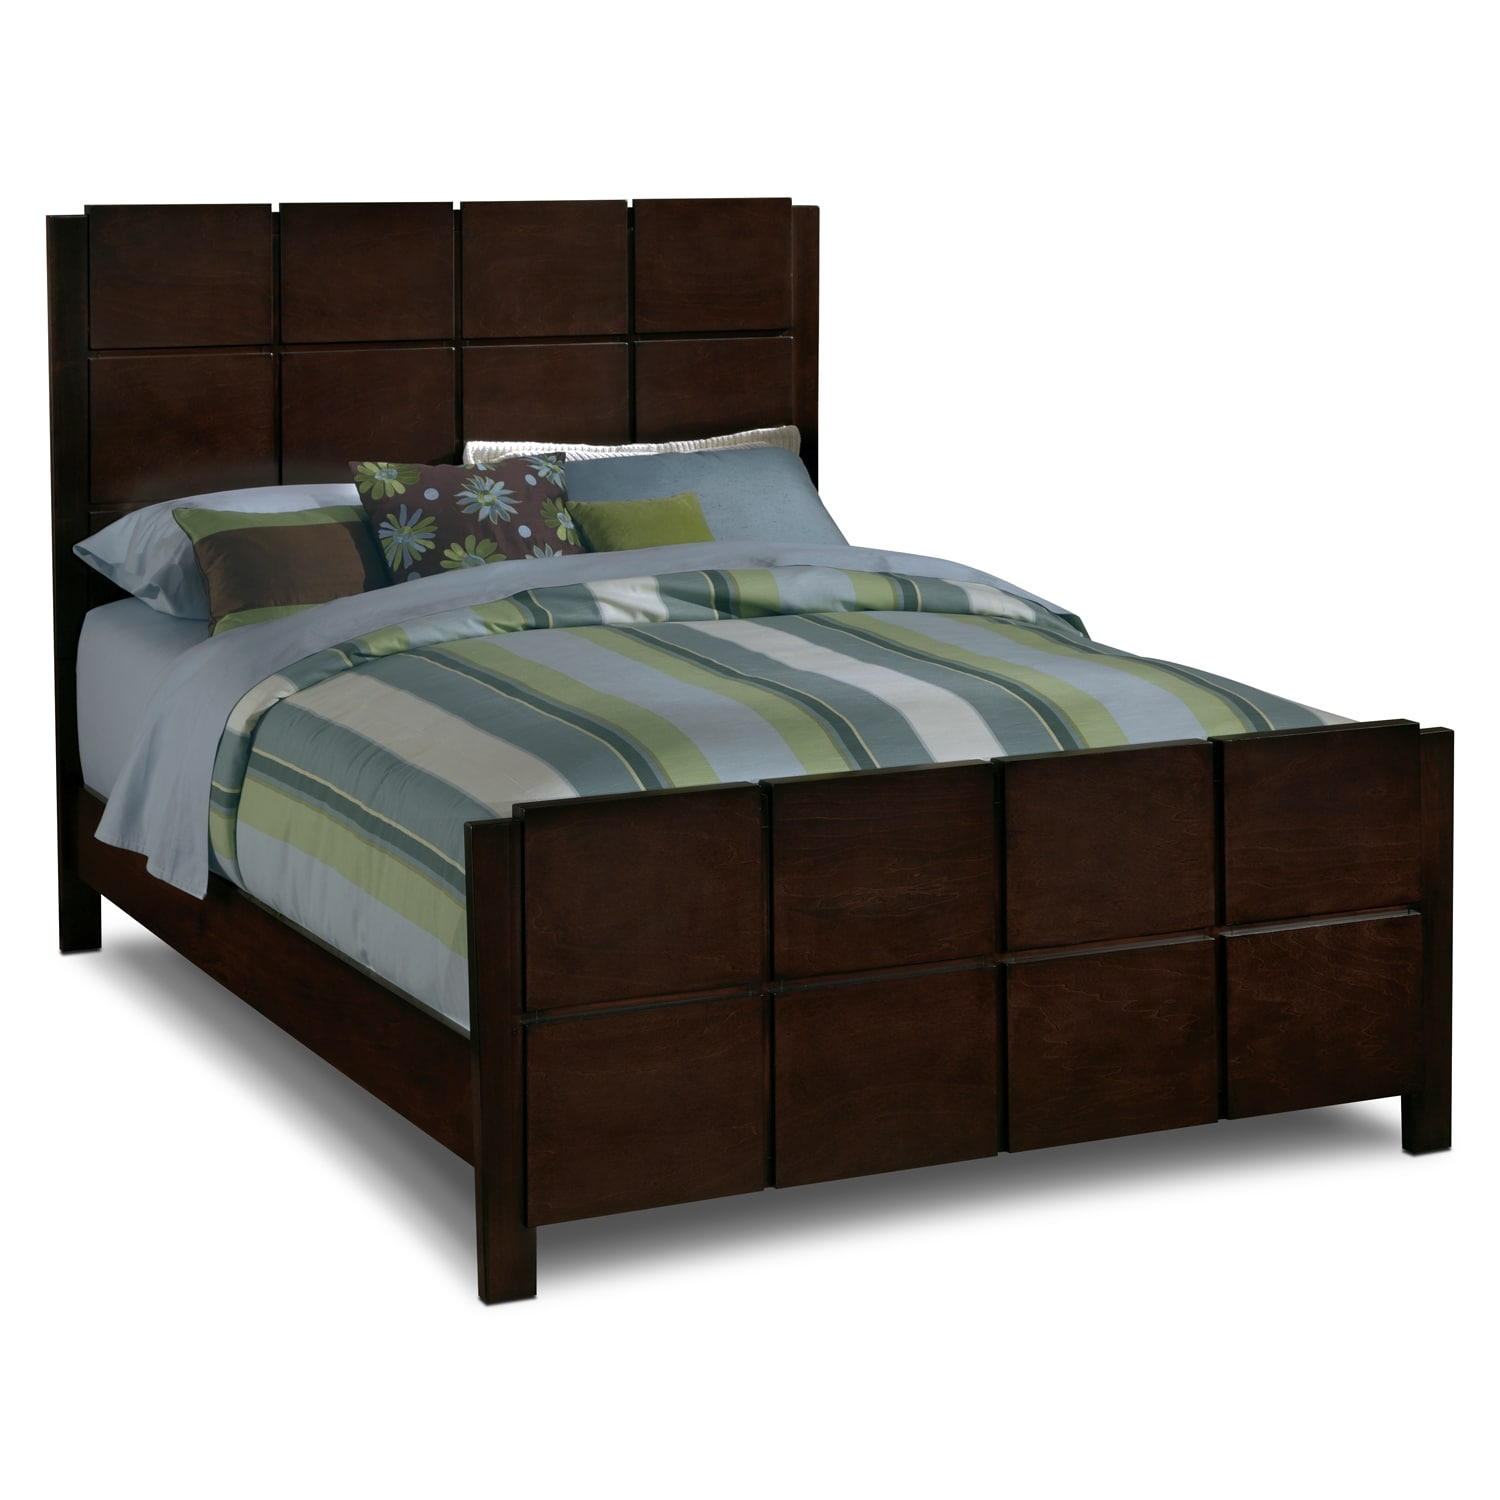 Bedroom Sets Queen Value City